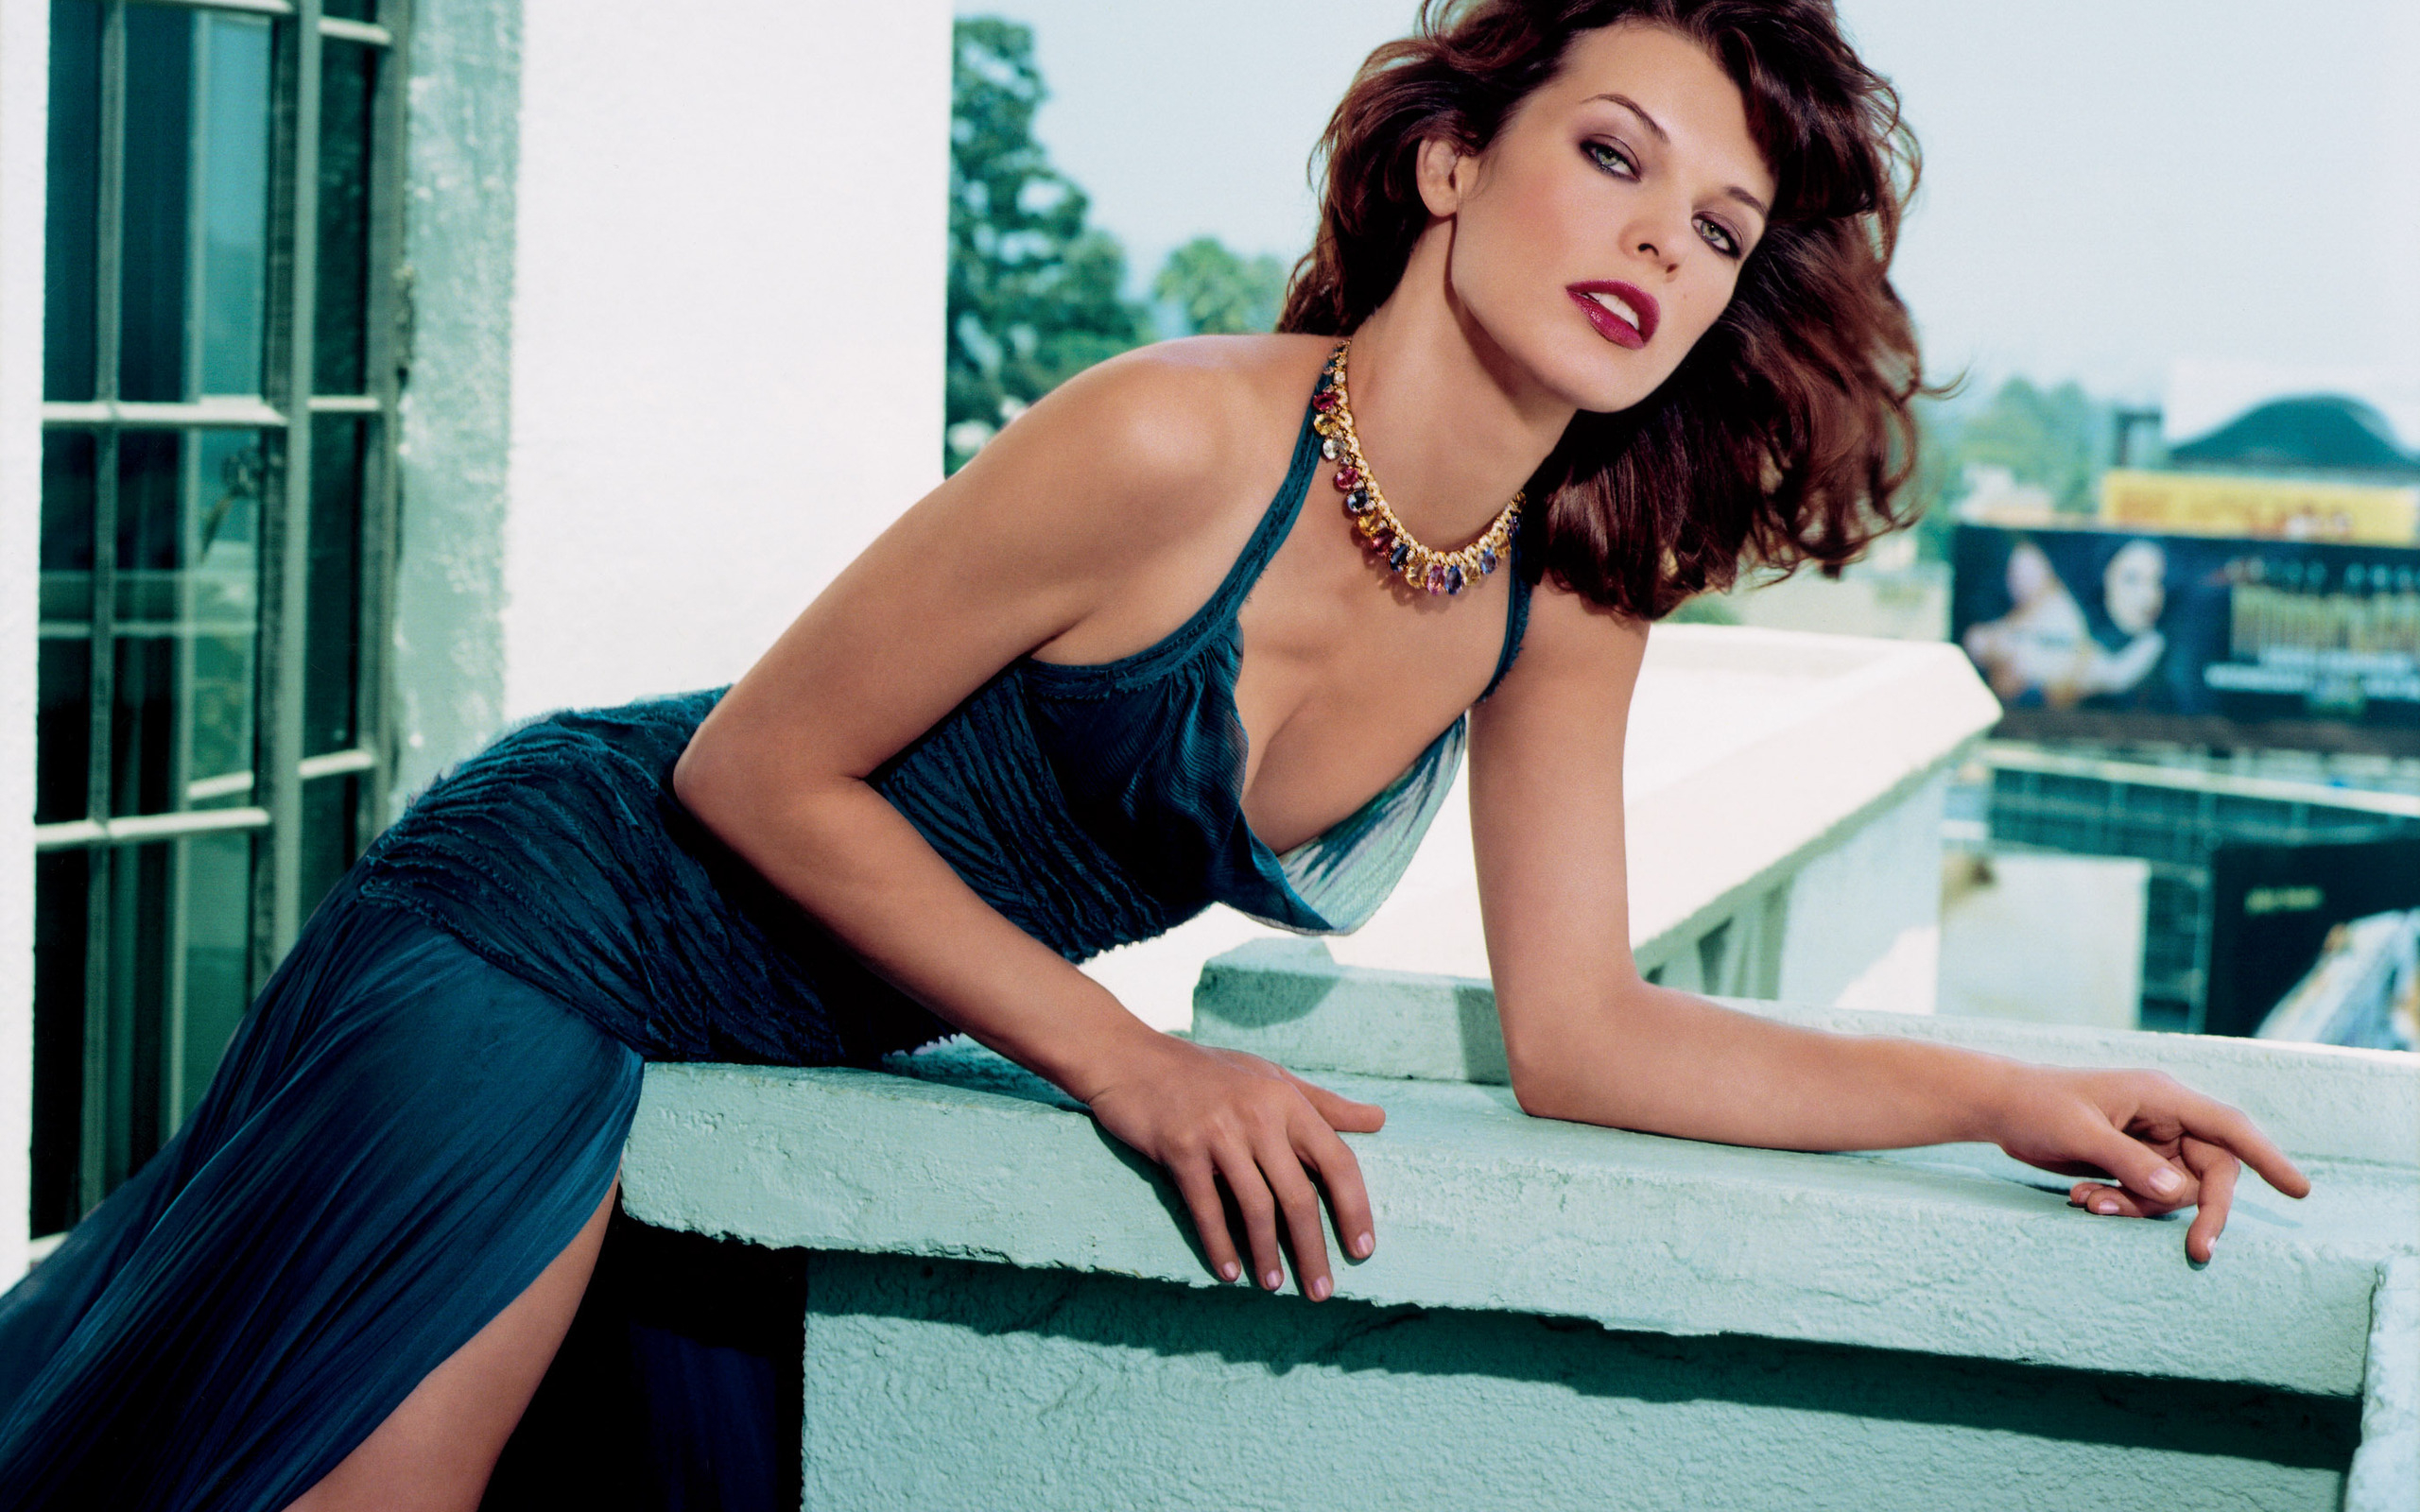 Milla jovovich wallpapers high resolution and quality download - Milla jovovich 4k wallpaper ...